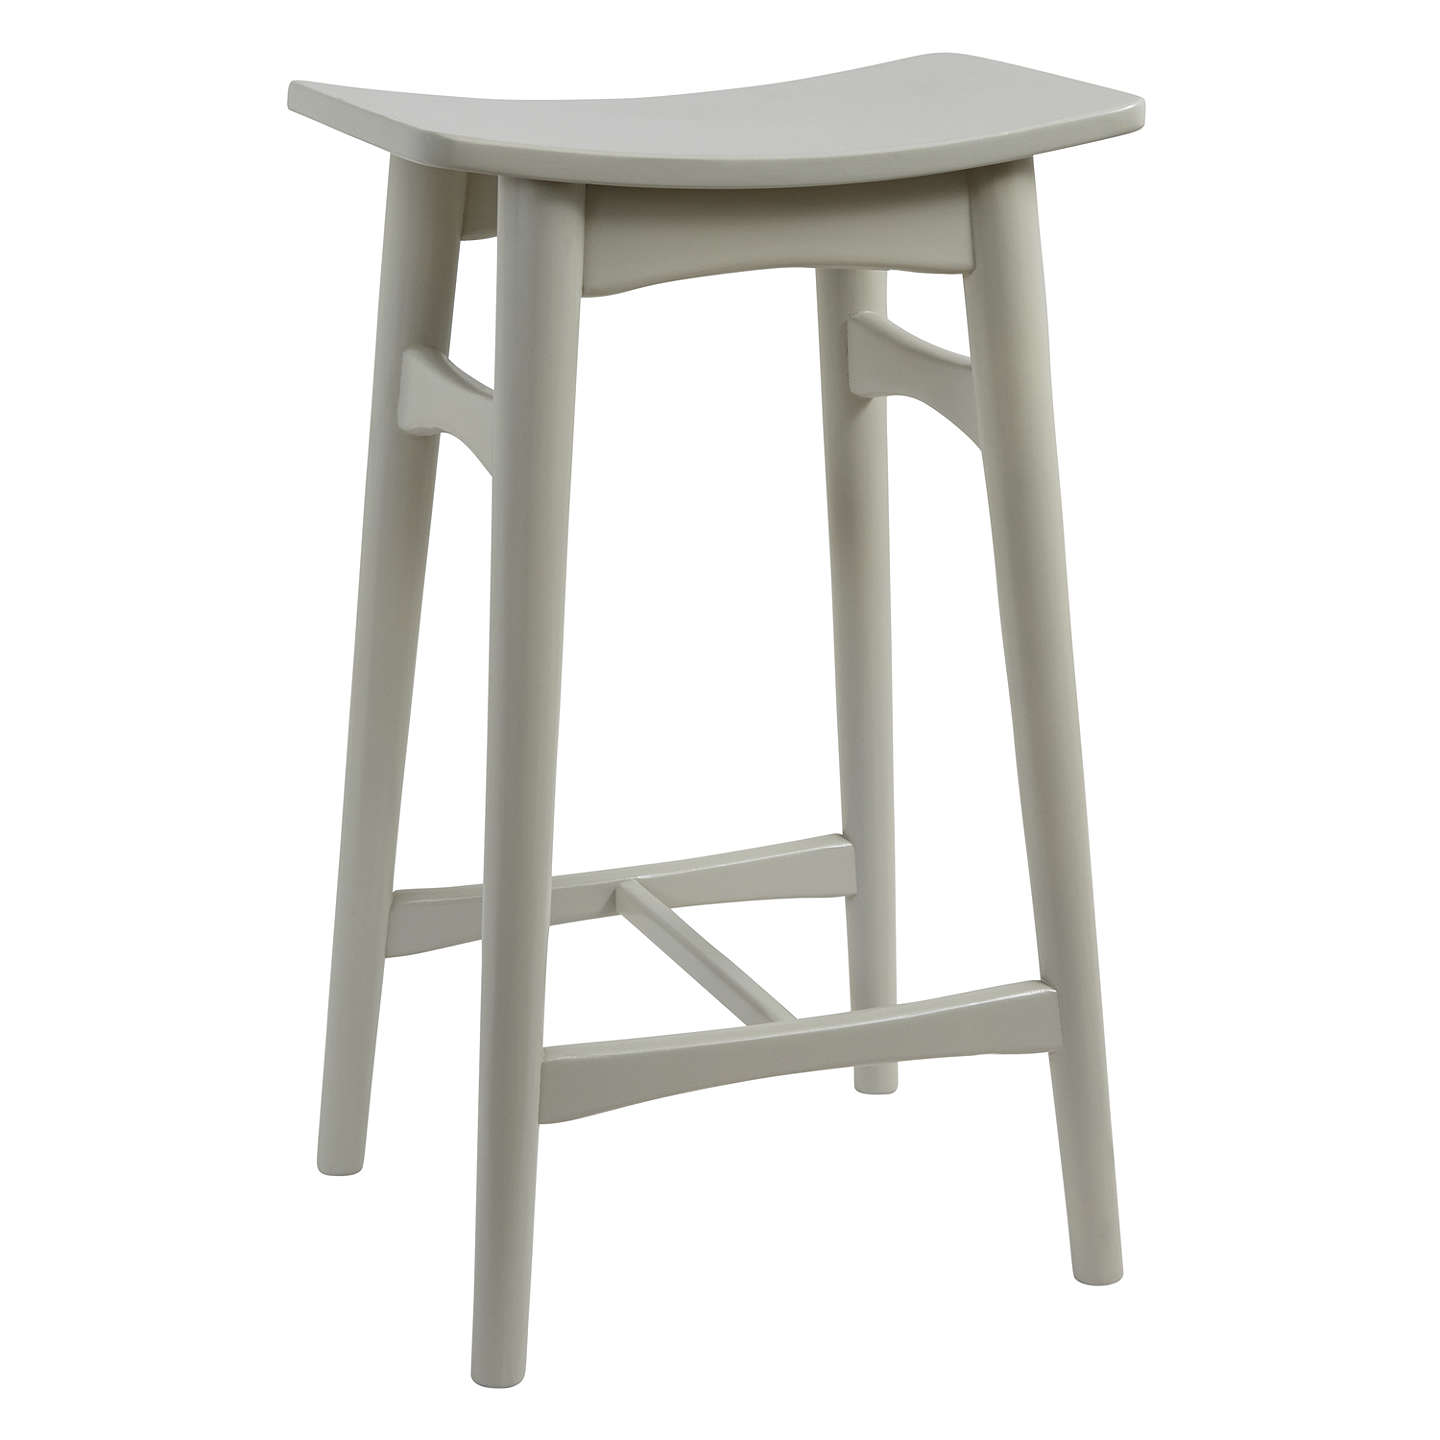 Kitchen Stools At John Lewis: Offer: House By John Lewis Asta Bar Stool At John Lewis